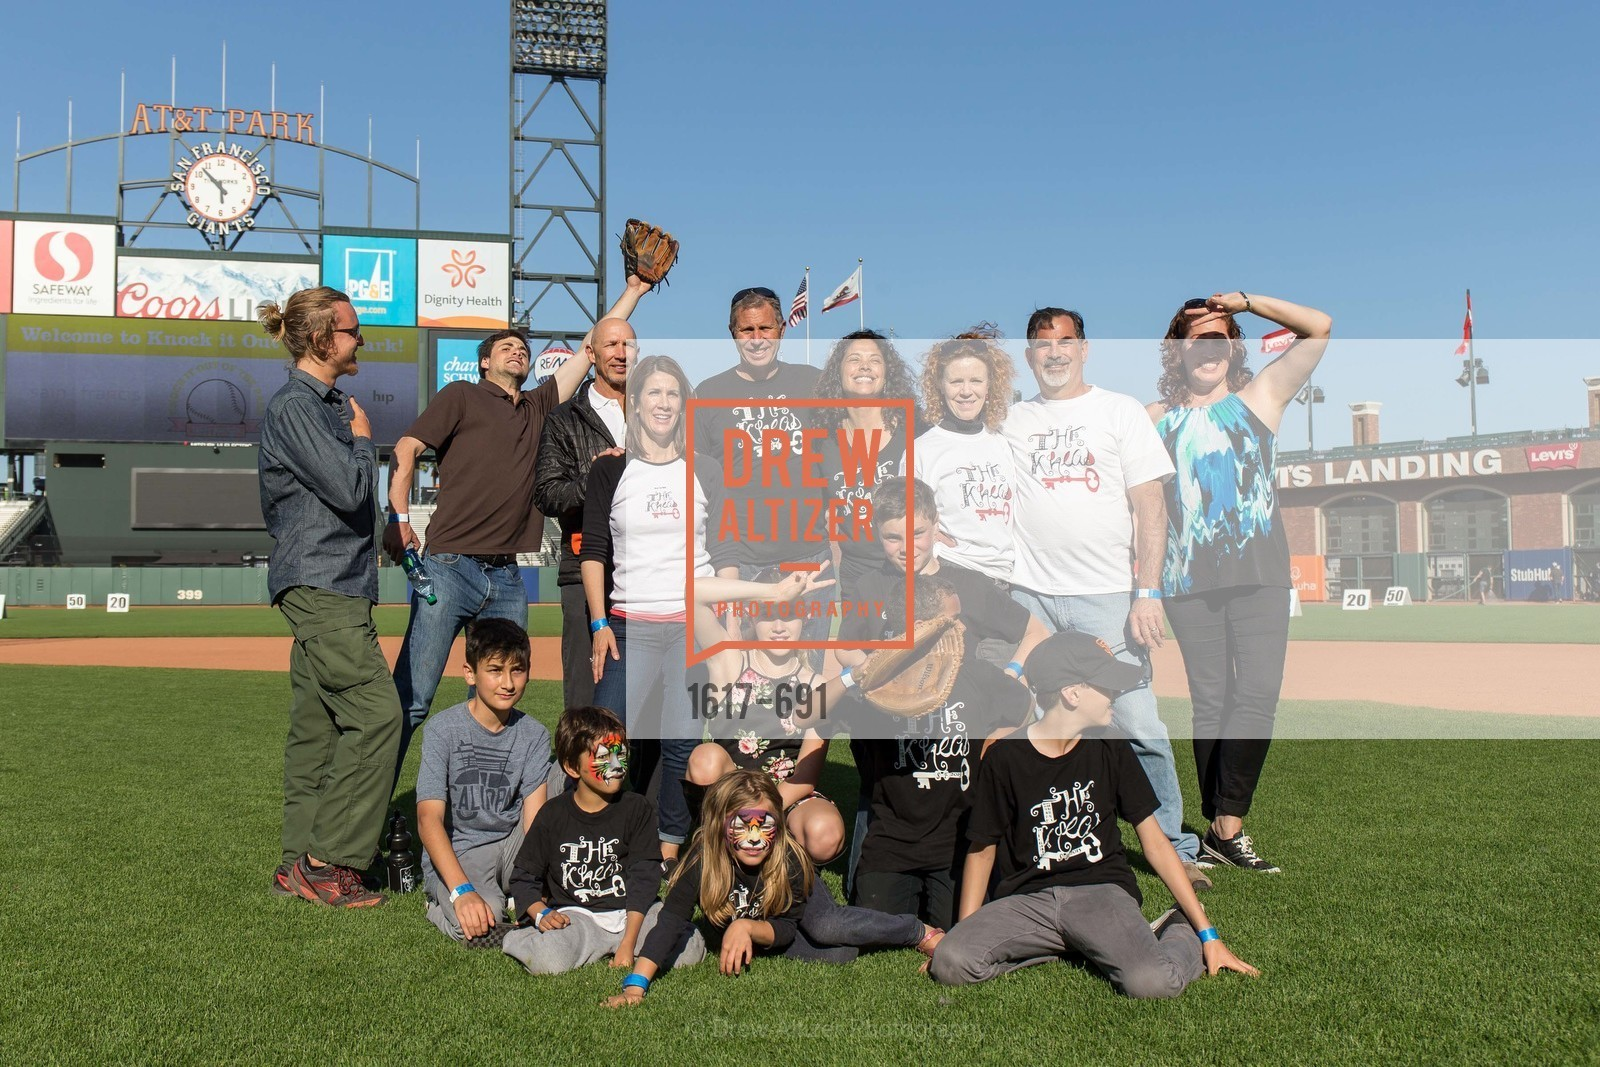 Boys And Girls Club of Tenderloin District, ST. FRANCIS FOUNDATION'S Knock It Out of the Park, US. AT&T Park, June 4th, 2015,Drew Altizer, Drew Altizer Photography, full-service agency, private events, San Francisco photographer, photographer california